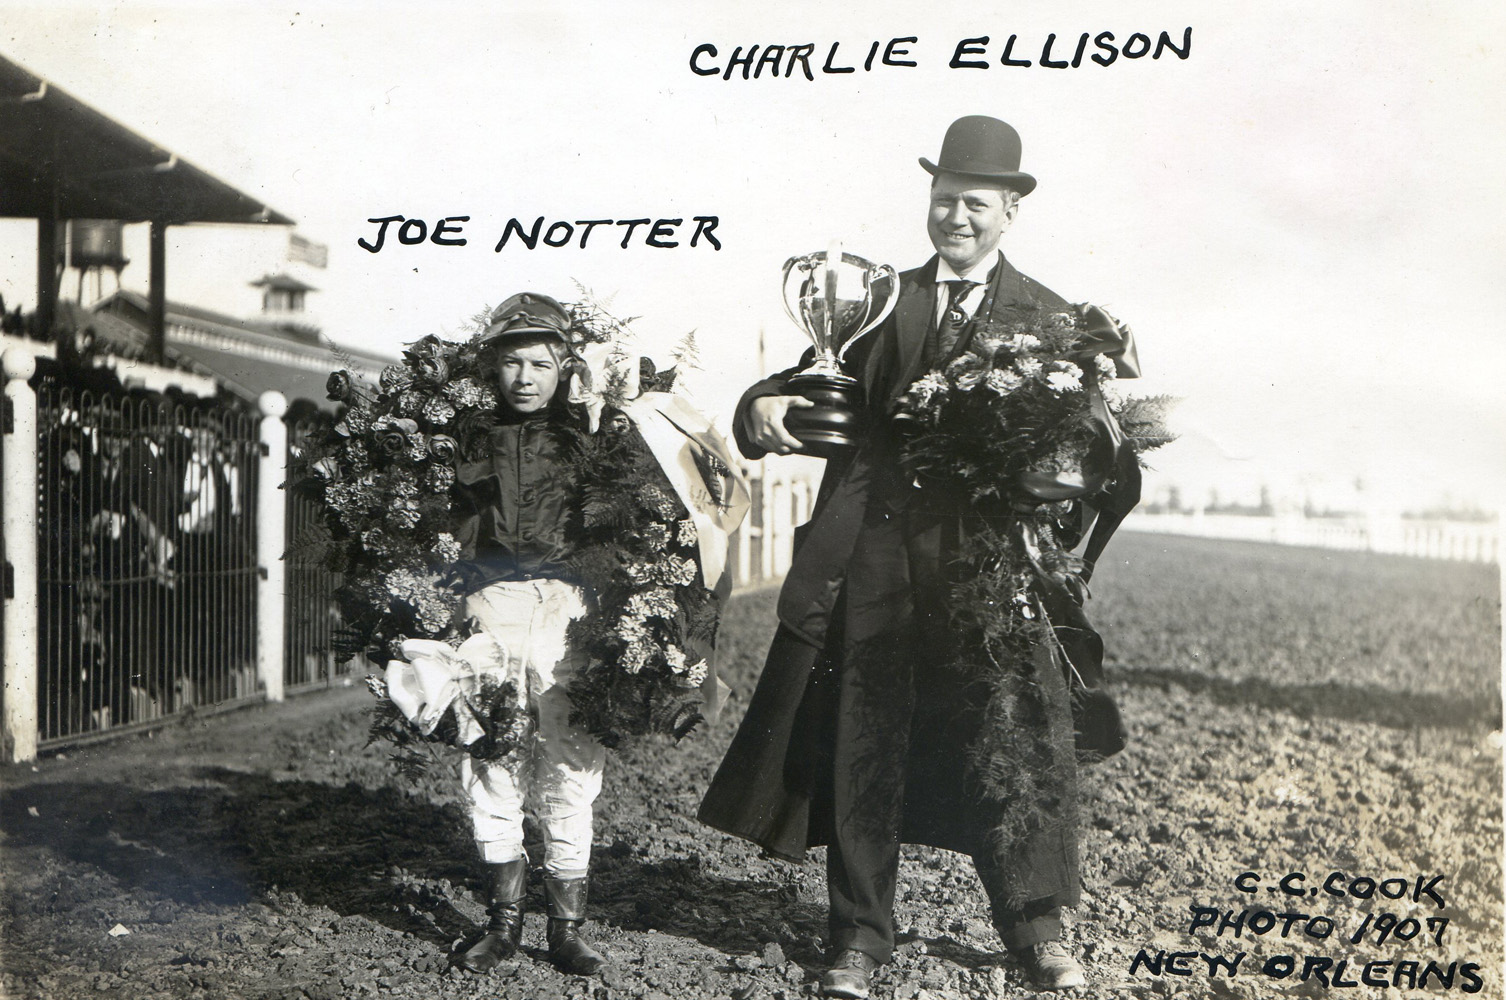 Joe Notter and Charlie Ellison after winning a race in New Orleans in 1907 (C. C. Cook/Museum Collection)